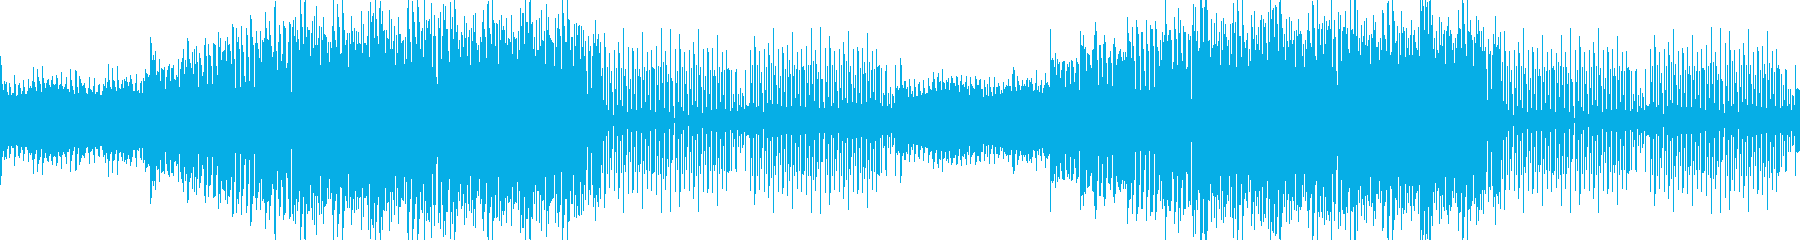 Entrance/Opening/Refreshing bright EDM's reproduced waveform